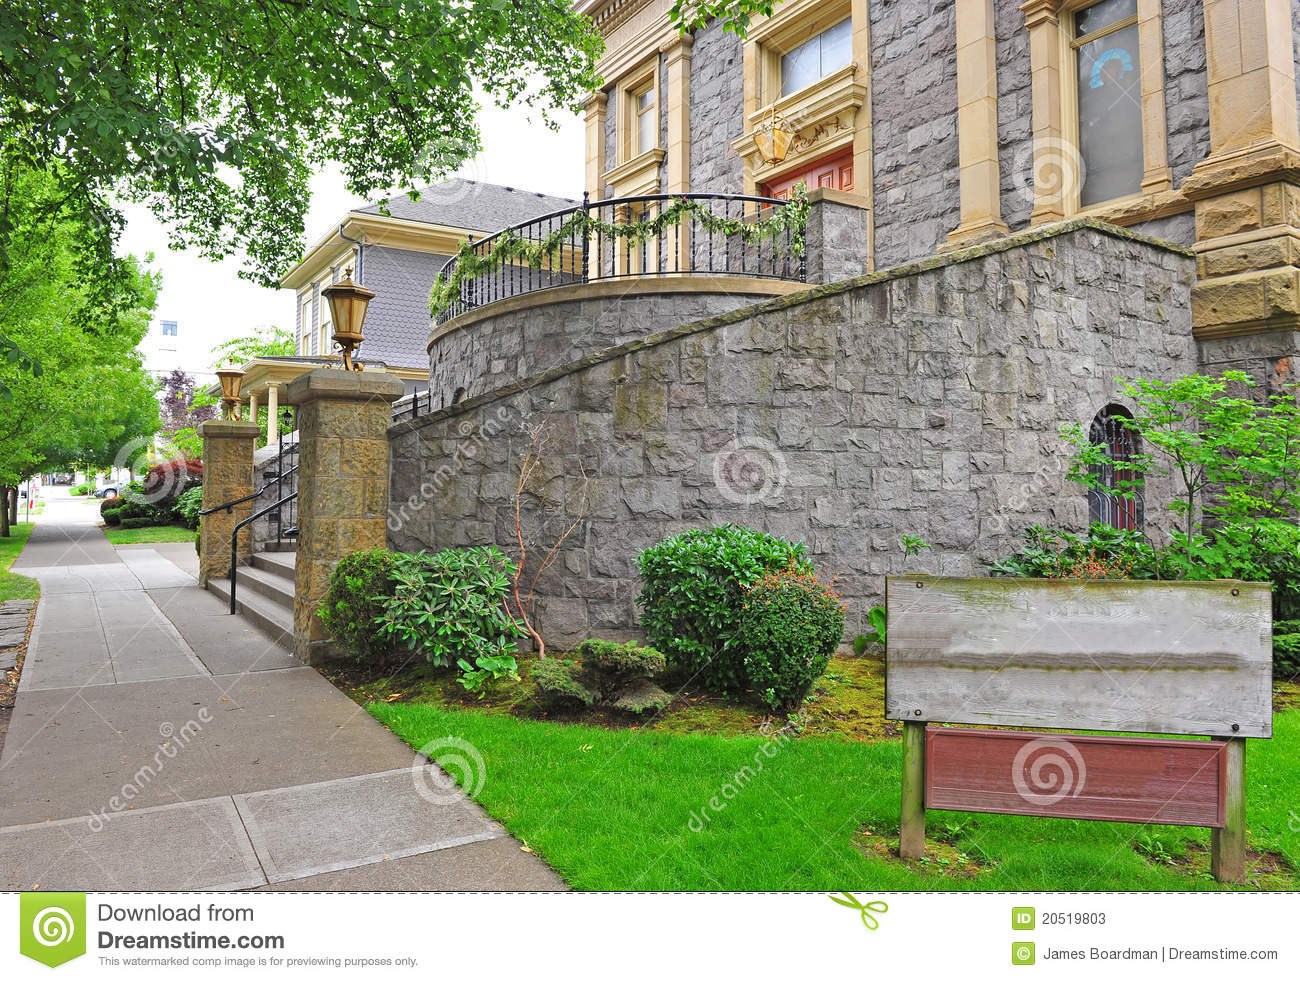 Stone building entry stock photos image 20519803 for Entrance to rivet city